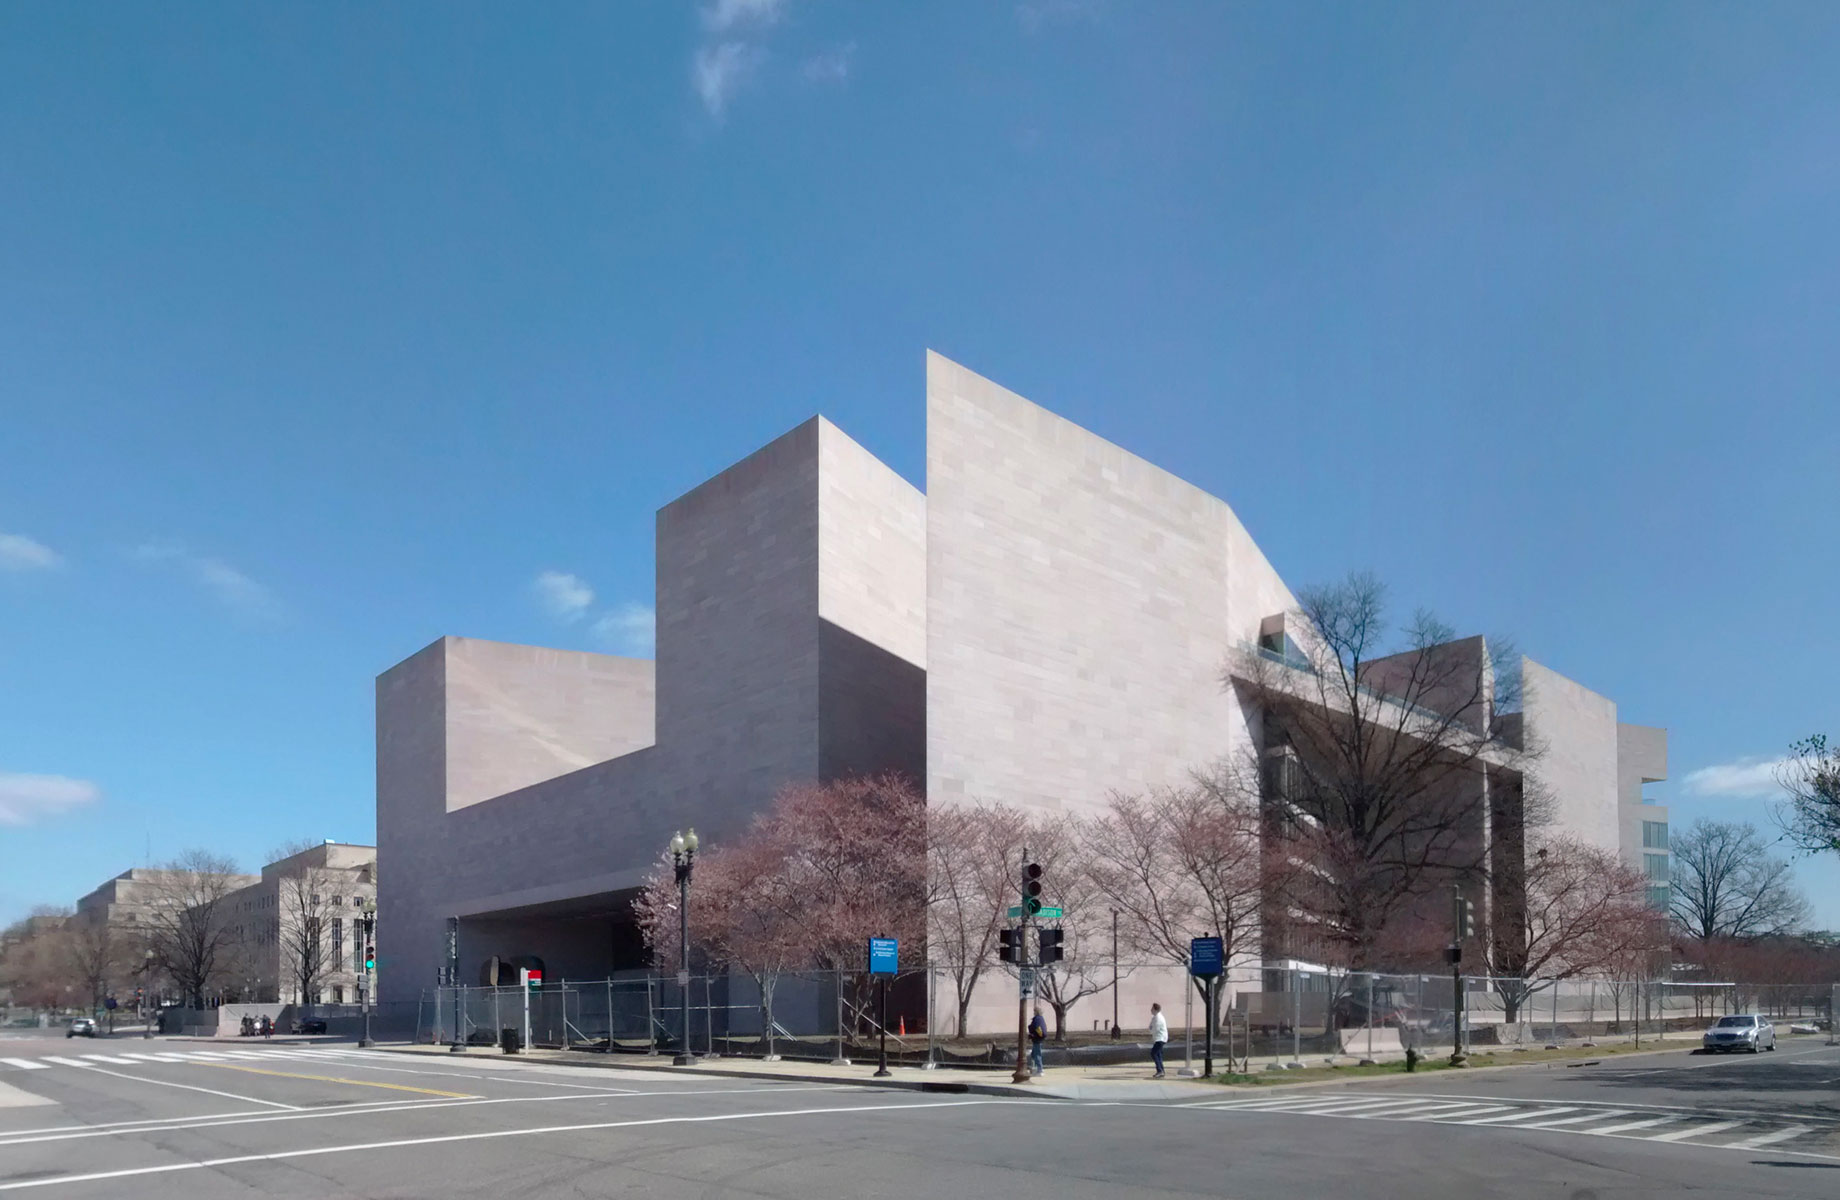 ▲ In 1978, Pei designed the National Gallery East Building in Washington, DC.